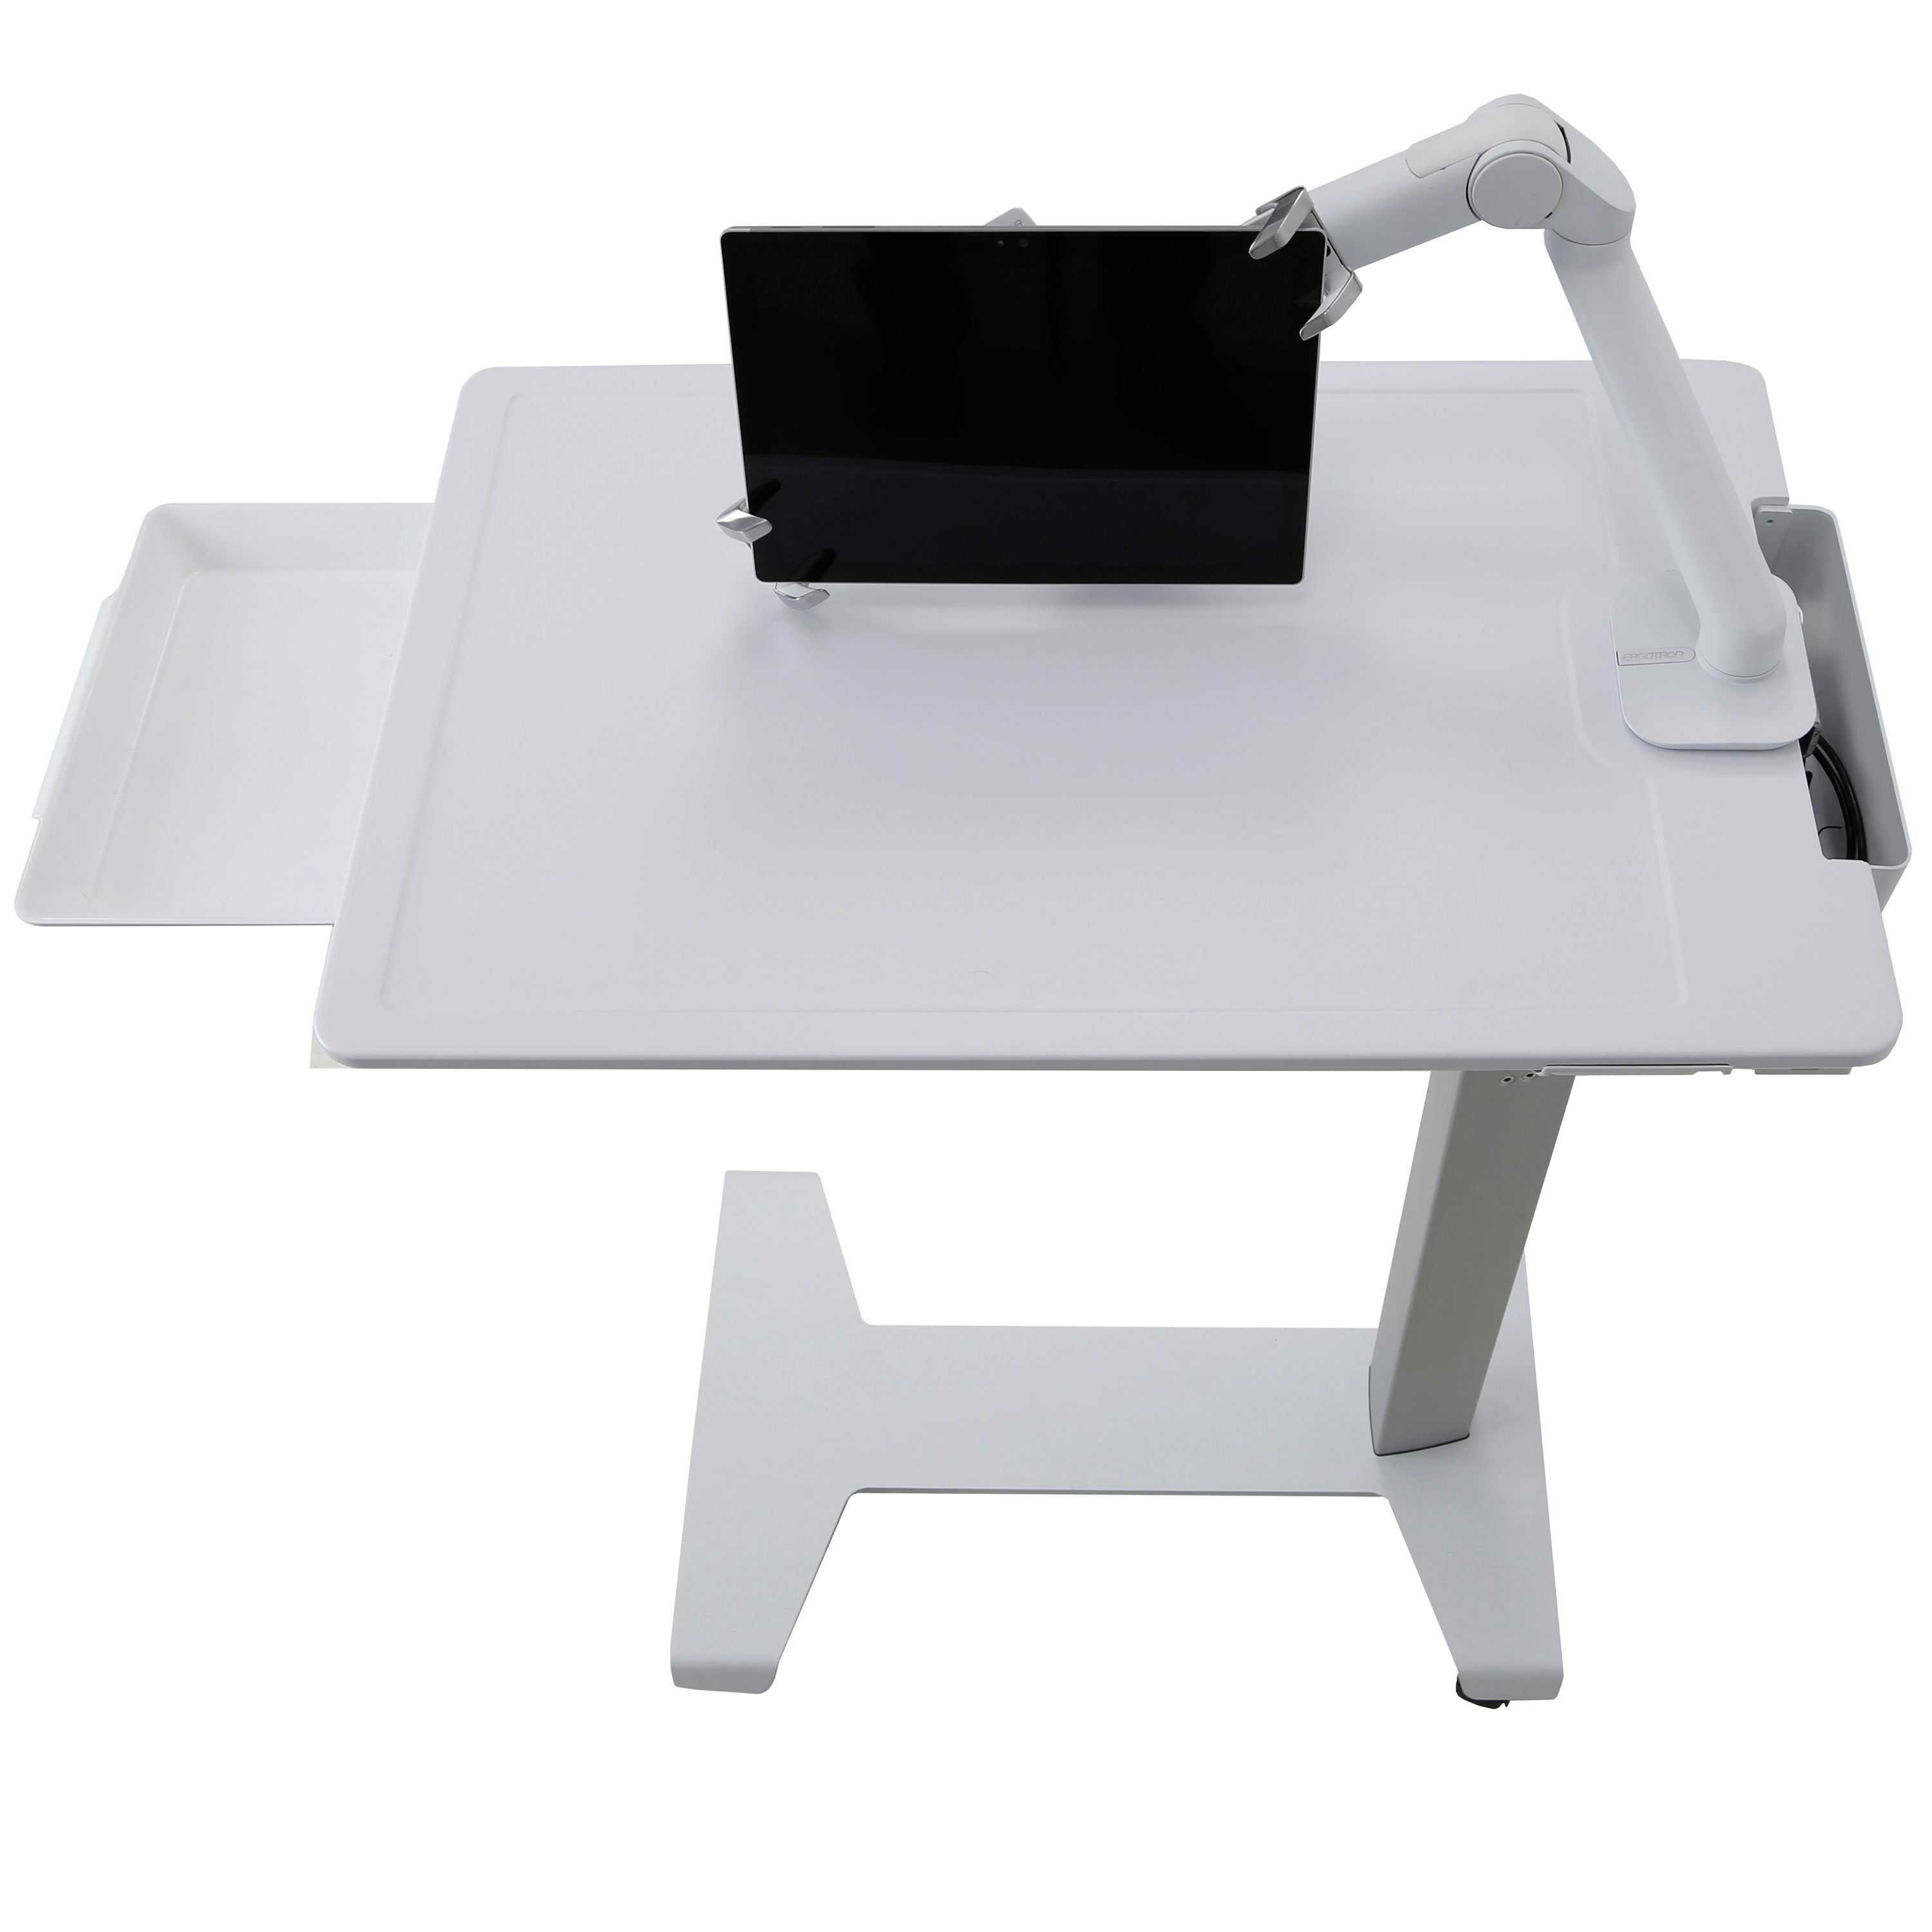 l medical table iseries novum products iobt overbed tables hospital gu nv